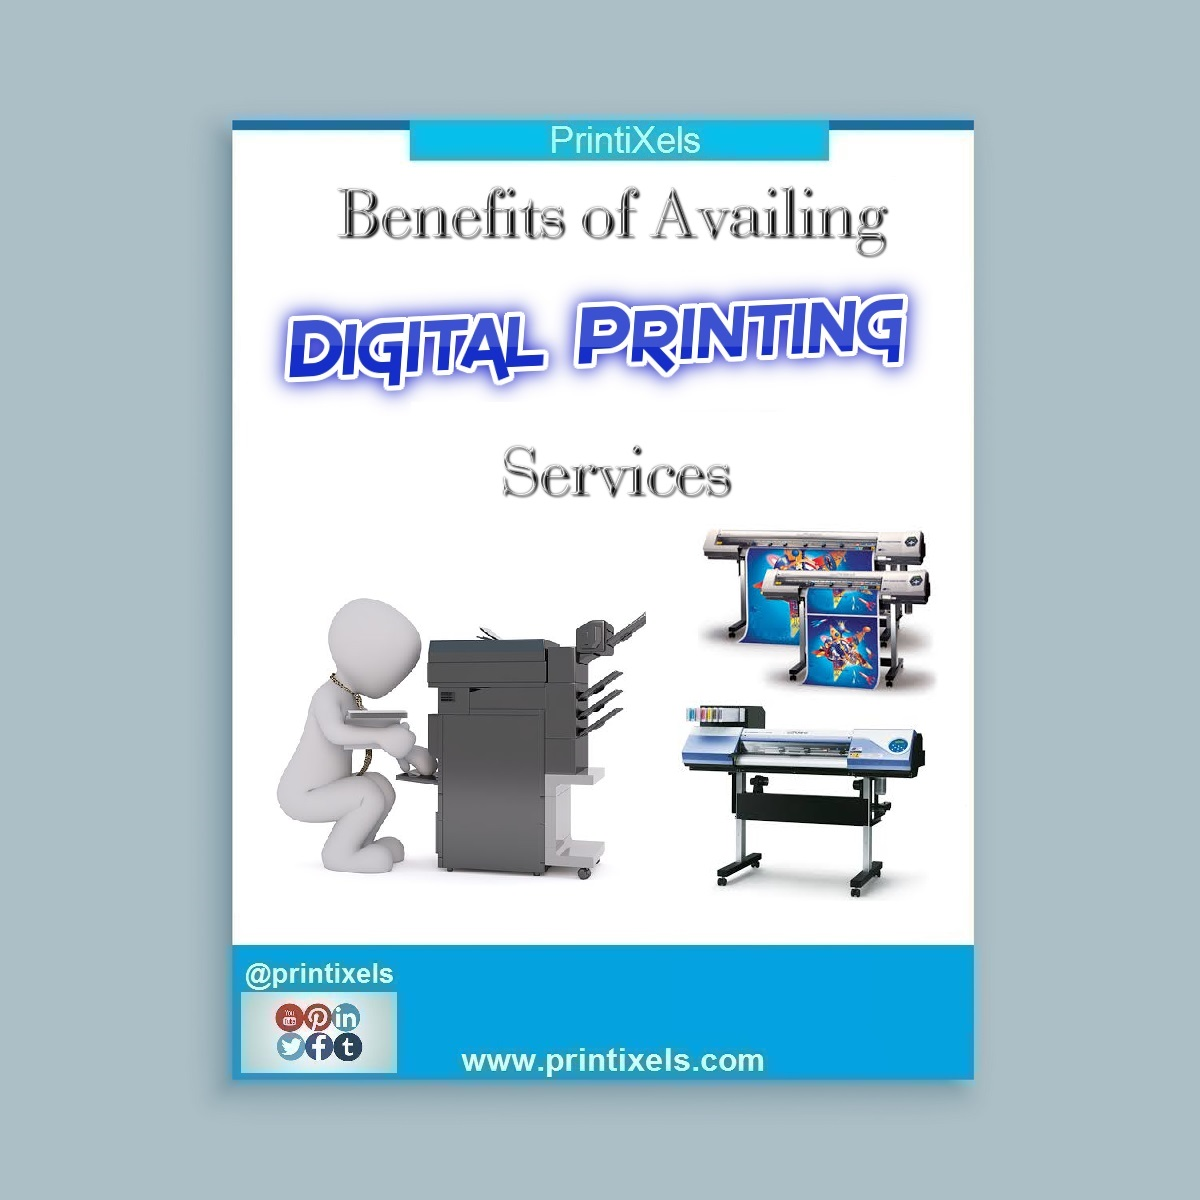 Benefits of Availing Digital Printing Services